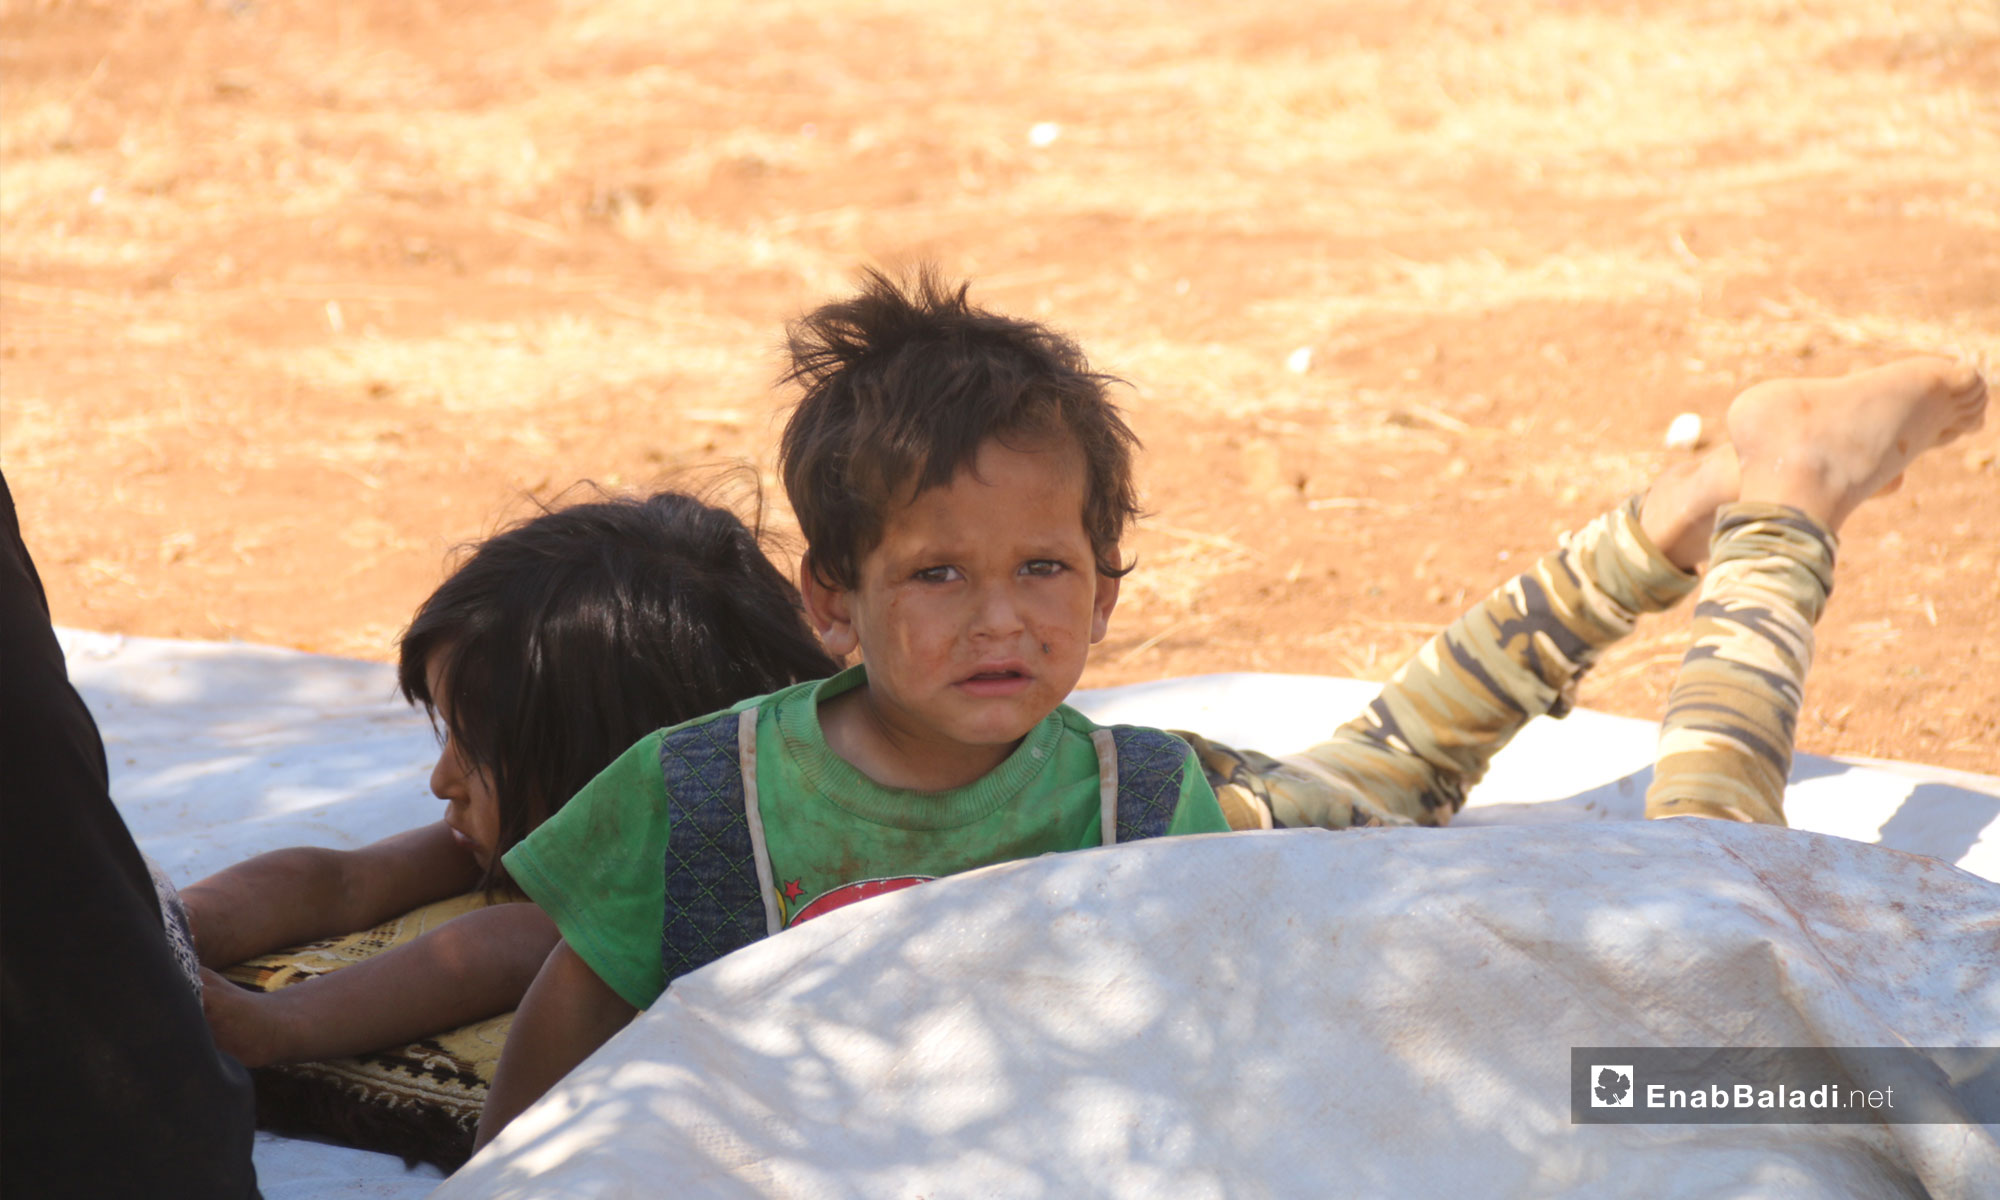 Child displaced from rural Idlib due to shelling to the town of Sarman near the Turkish supervision point in Idlib – September 12, 2018 (Enab Baladi)